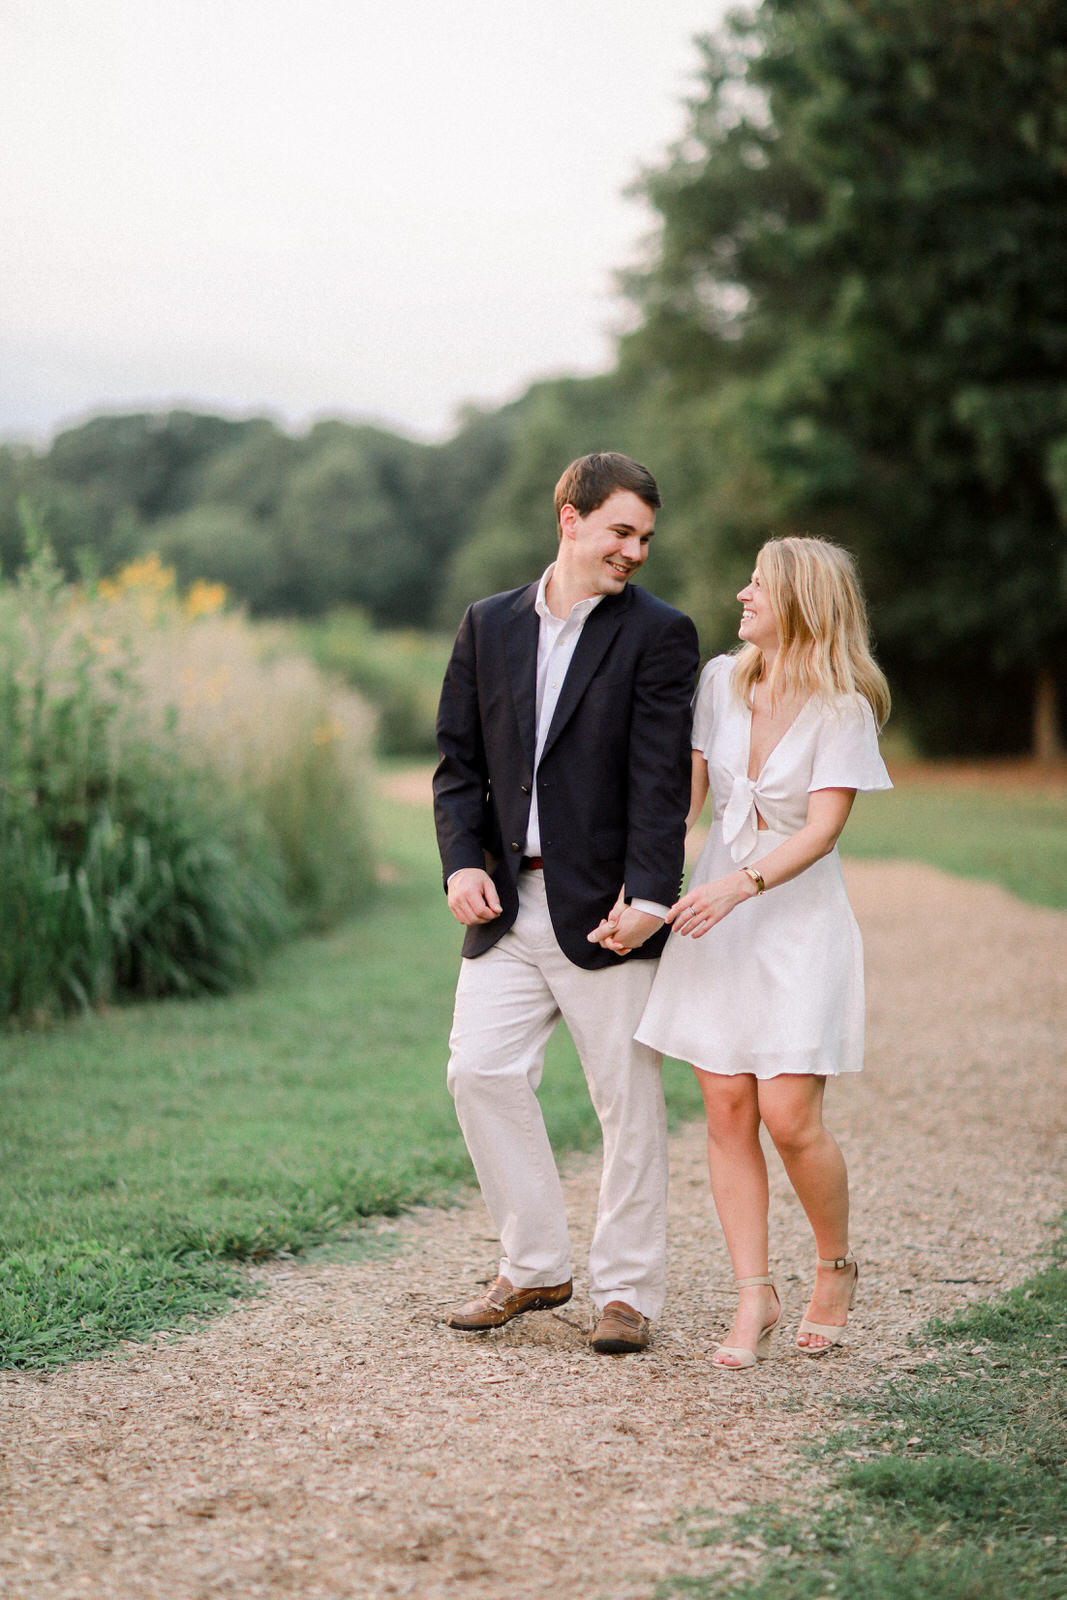 An engaged couple poses for their engagement photography session at Reynolda Gardens in Winston-Salem.